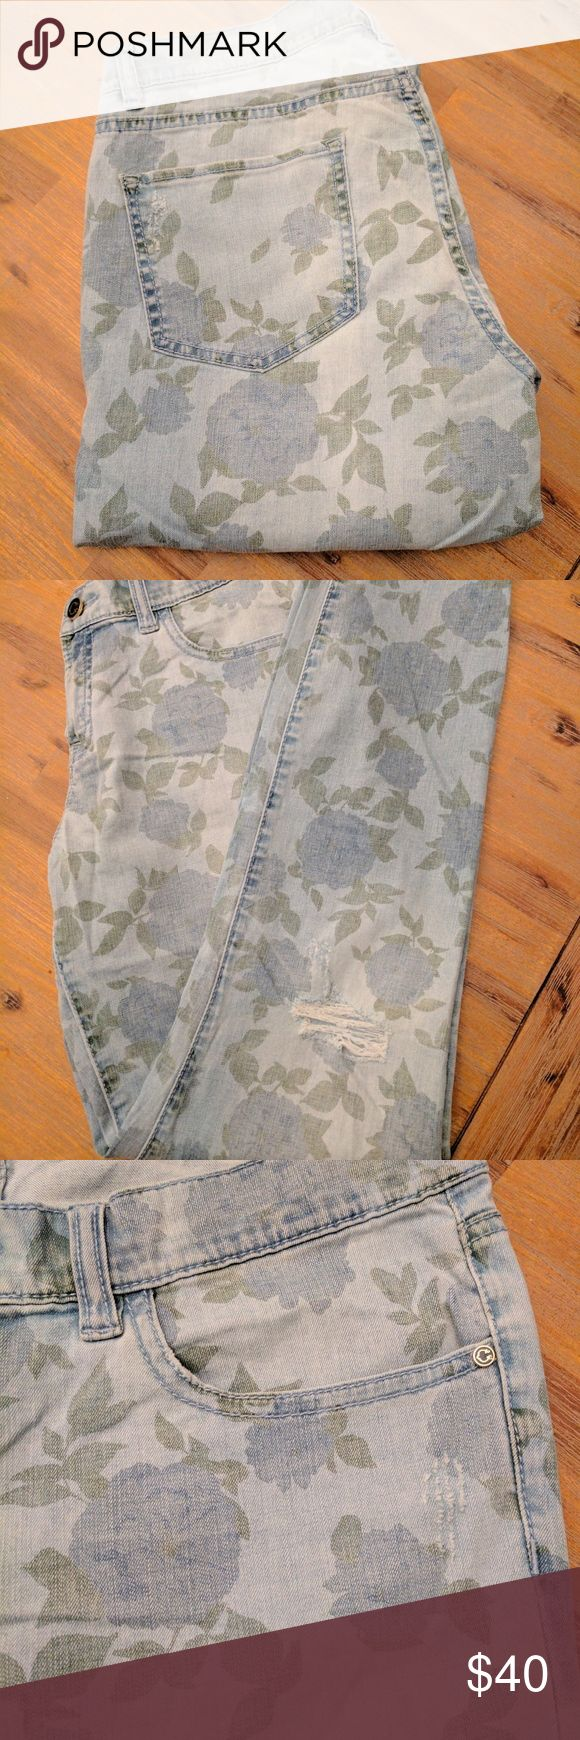 C Wonder Vintage Floral Jeans The jeans are perfect for Spring, Summer and Fall! Pair them with a crop top or over sized sweater. C Wonder Jeans Skinny